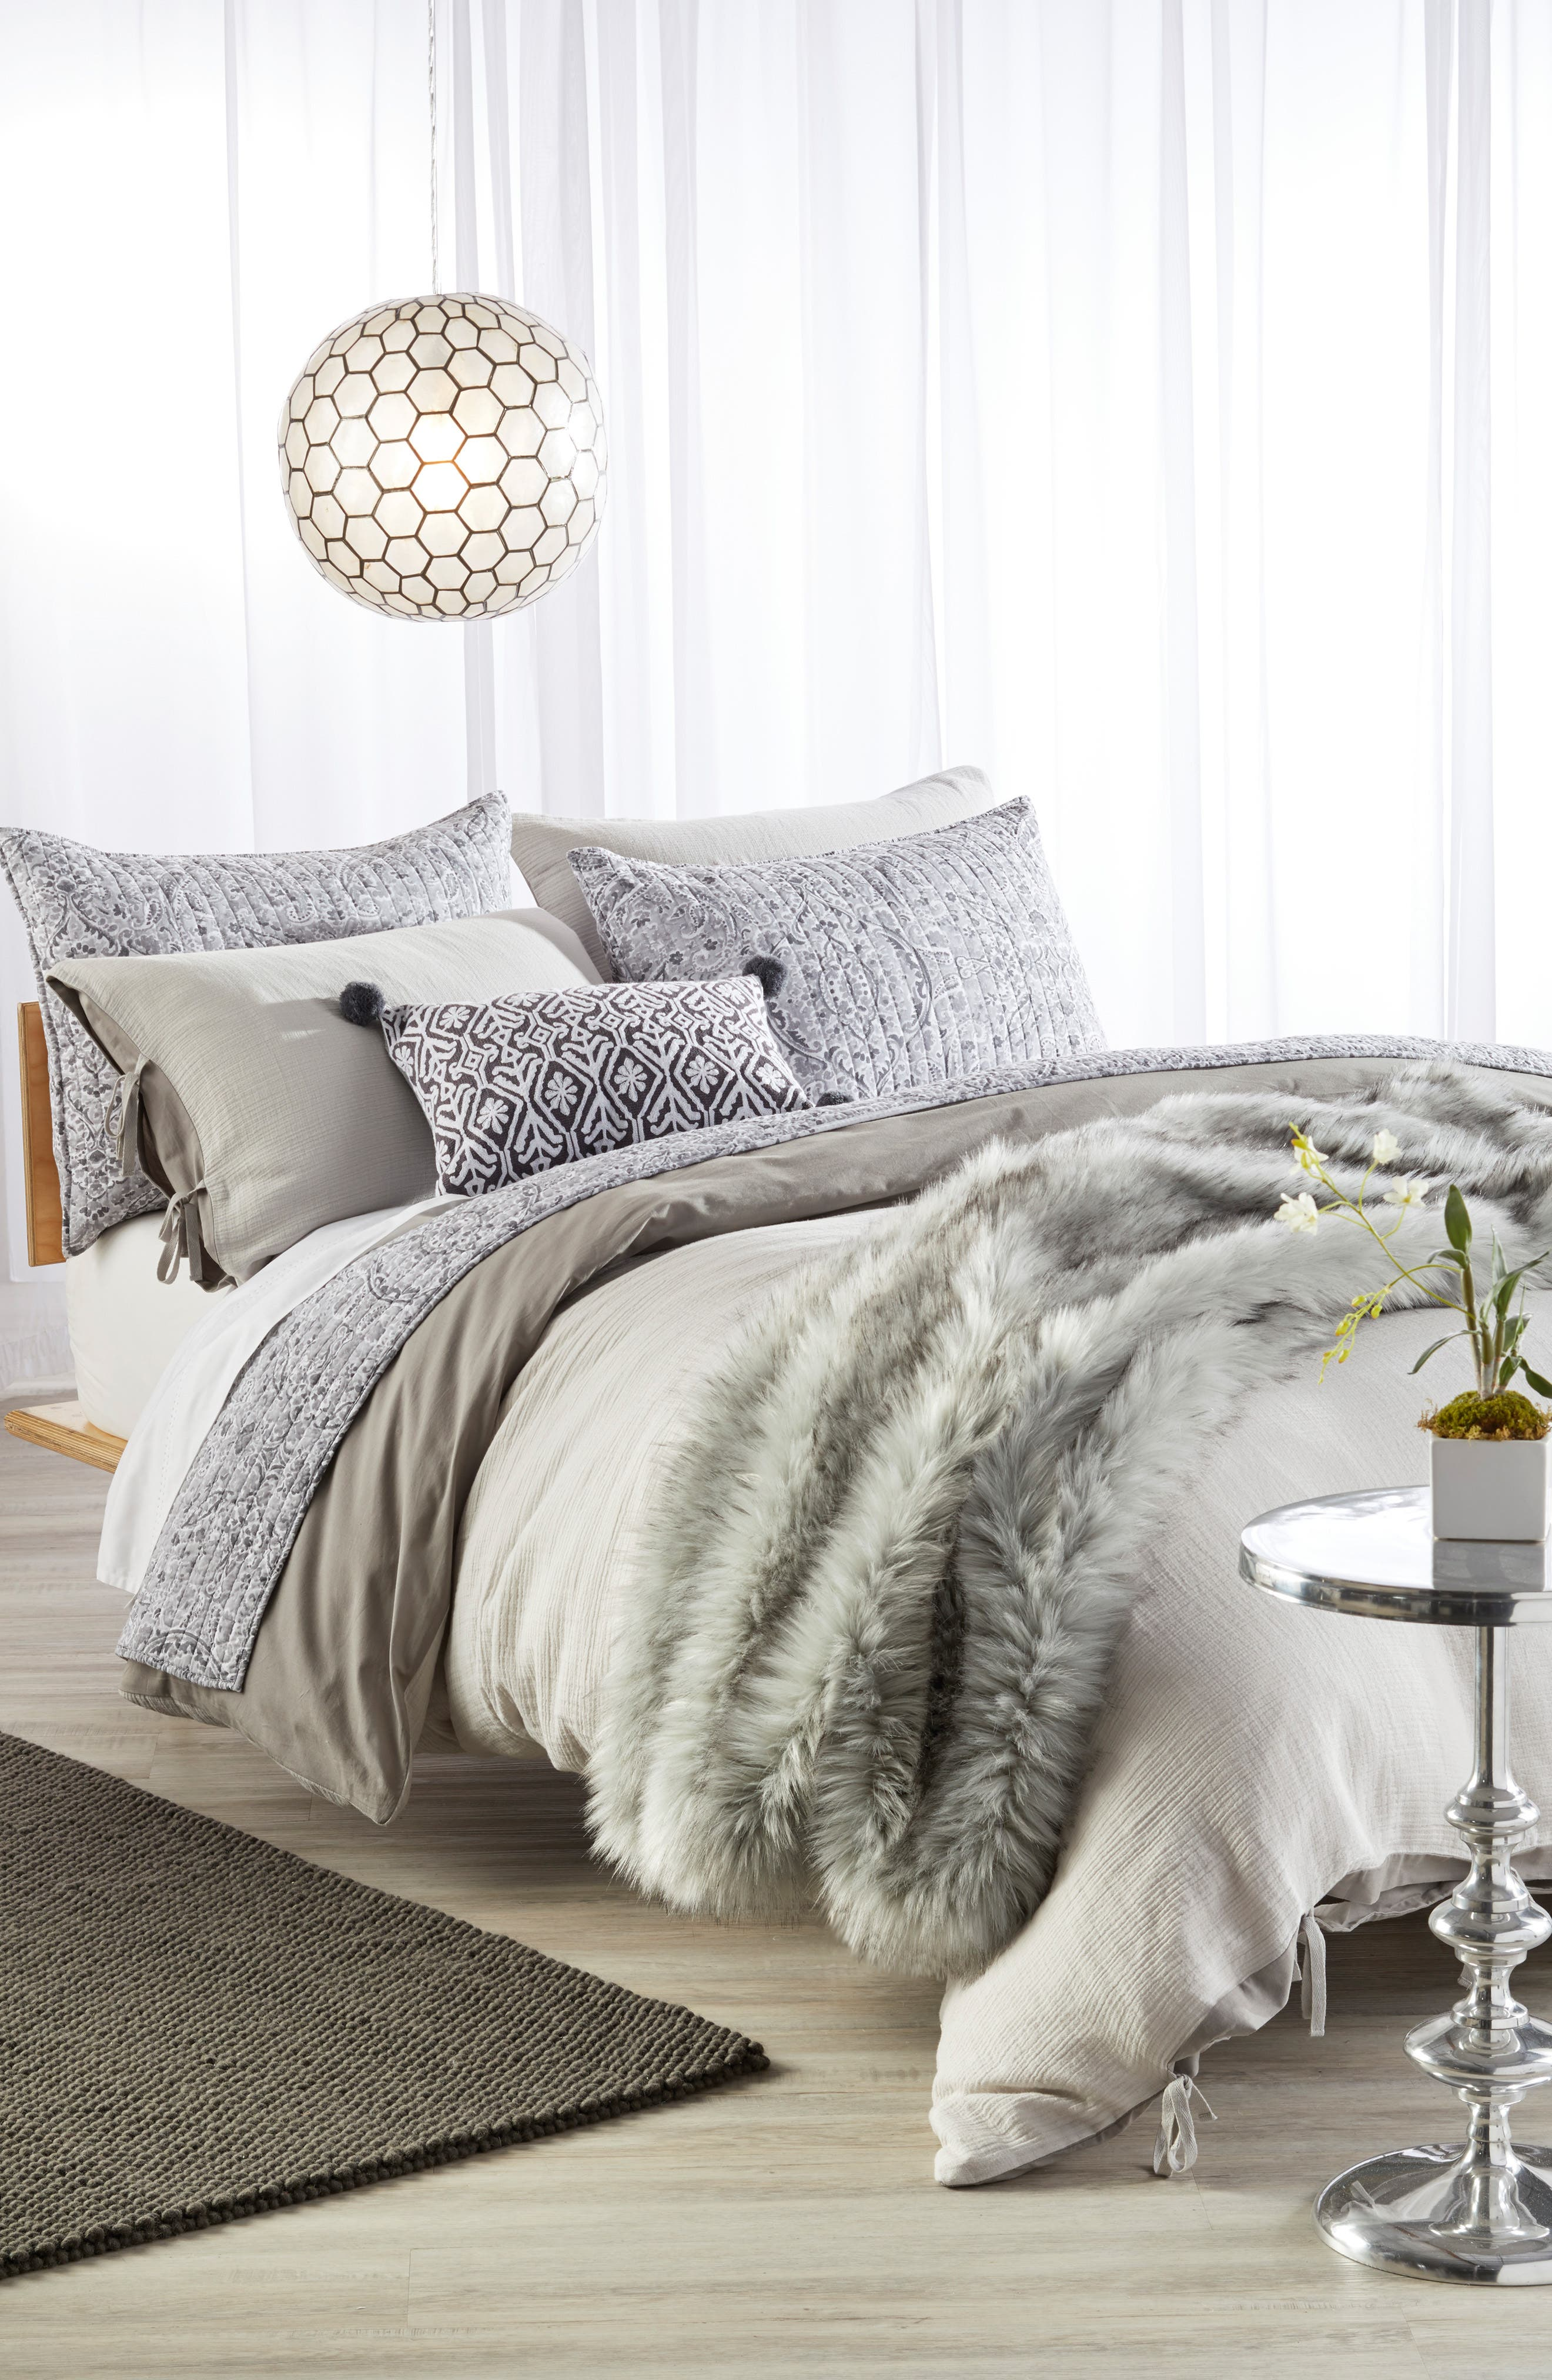 Nordstrom Double Weave & Levtex Avanti Bedding Collection